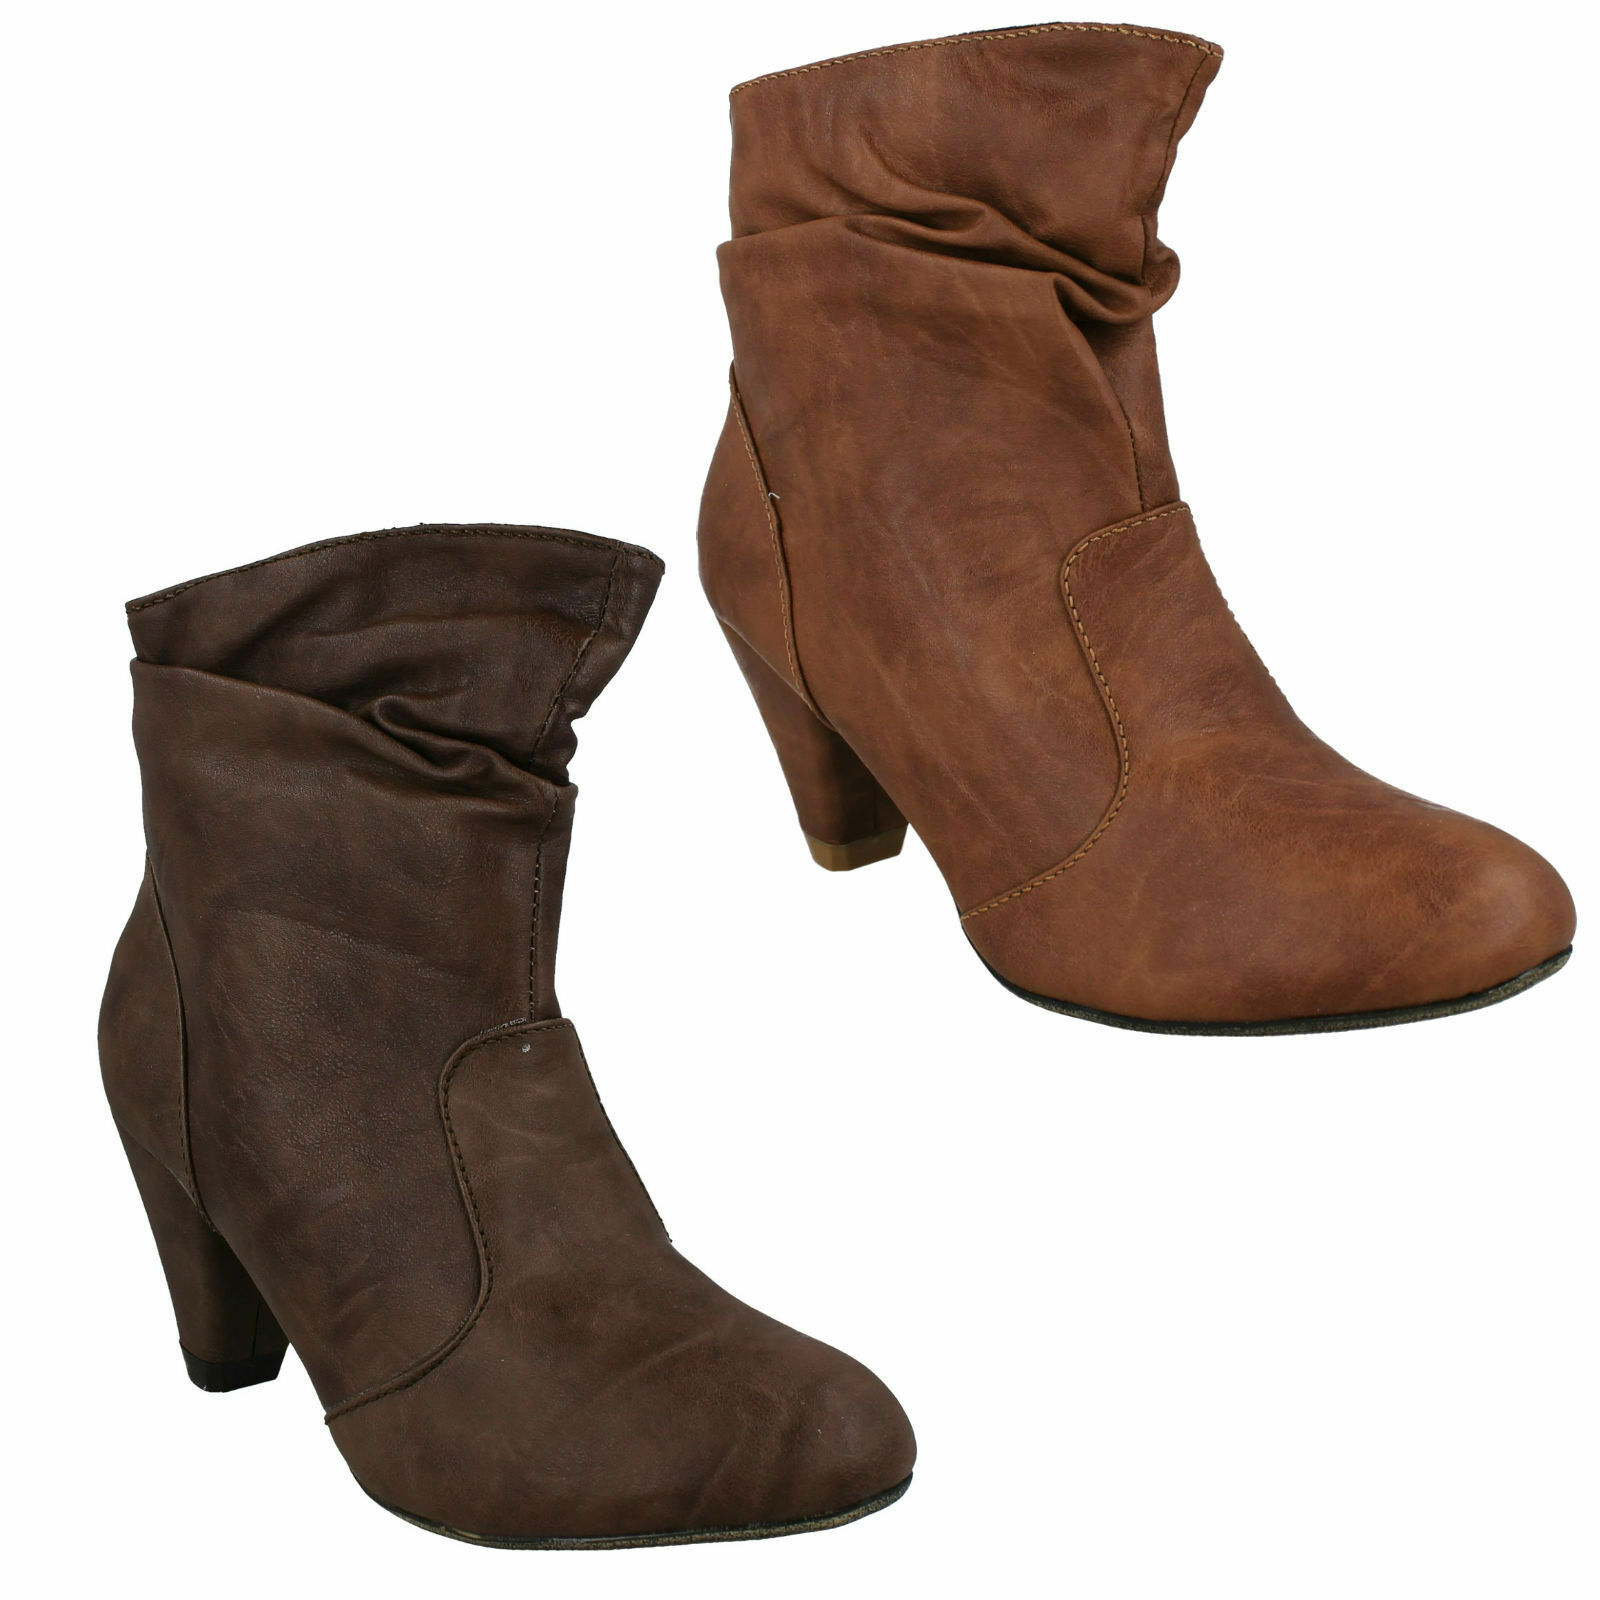 F5R818 WOMENS LADIES ZIP UP RUCHED SHOES CONE HEEL ANKLE BOOTS SPOT ON £9.99